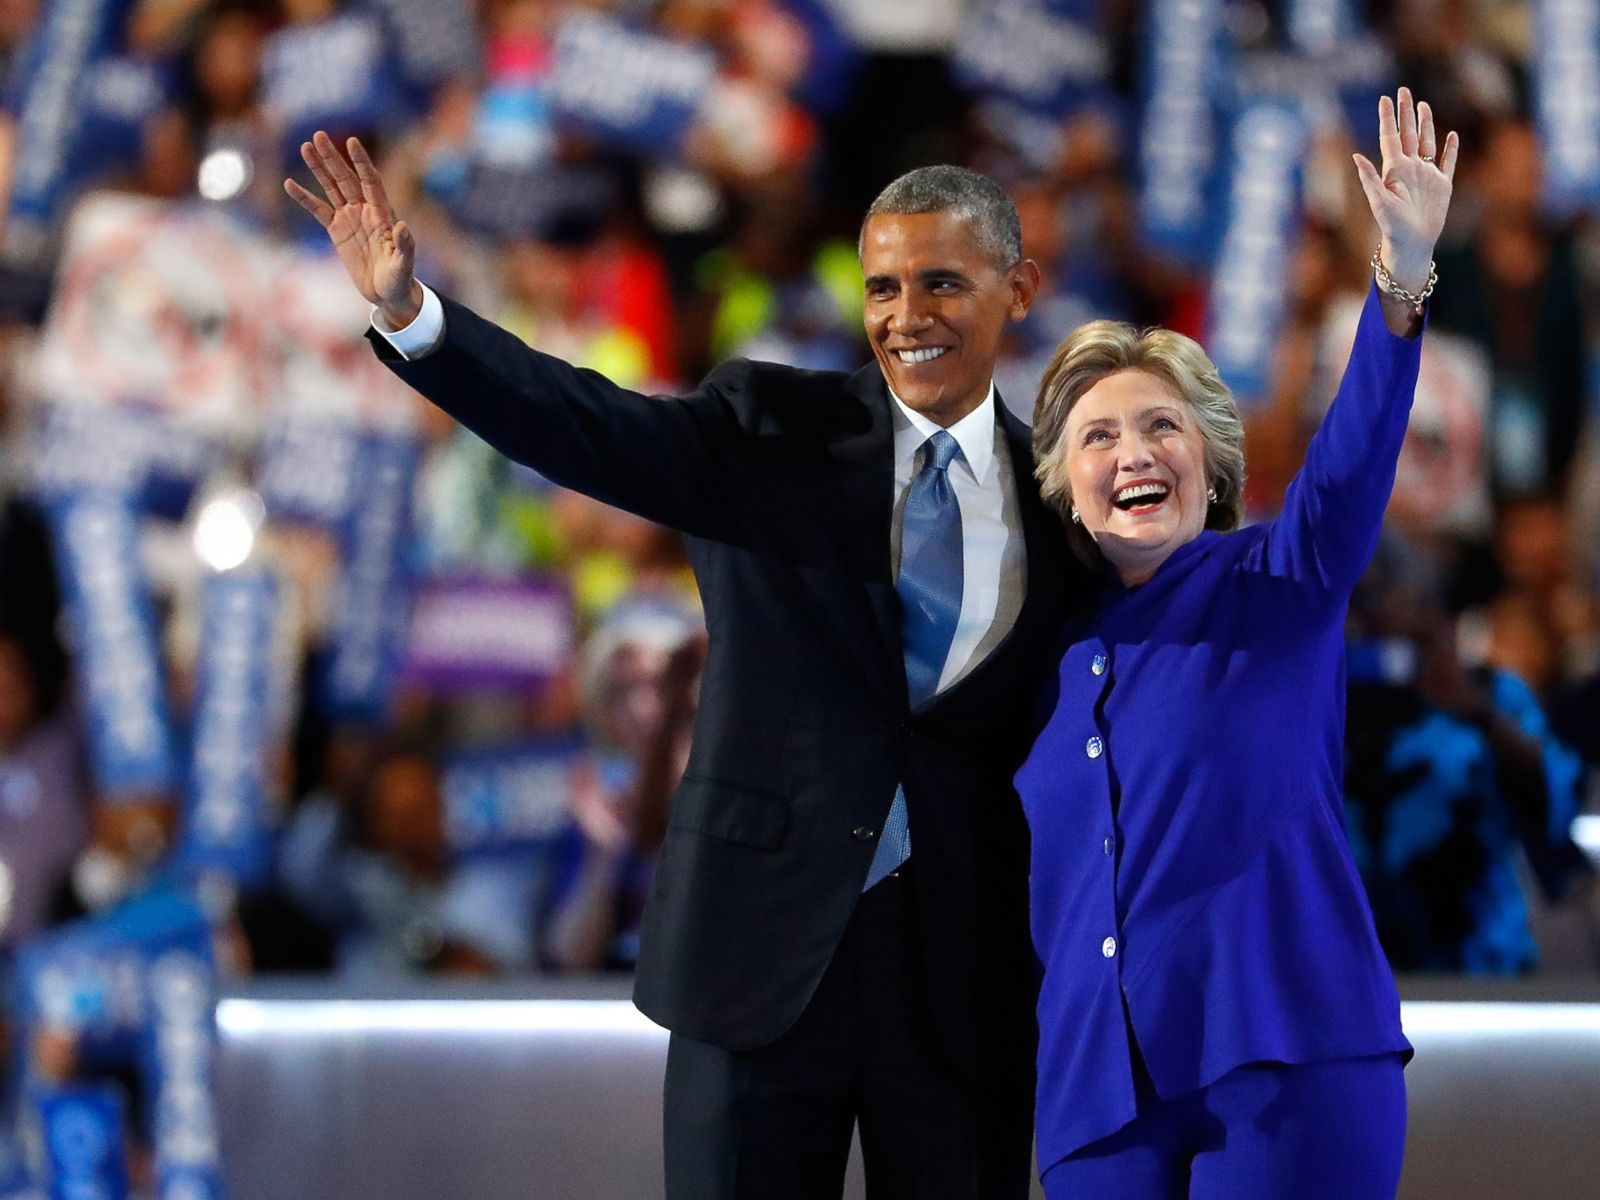 PHOTO: President Barack Obama and Democratic presidential candidate Hillary Clinton wave to the crowd on the third day of the Democratic National Convention, July 27, 2016 in Philadelphia.